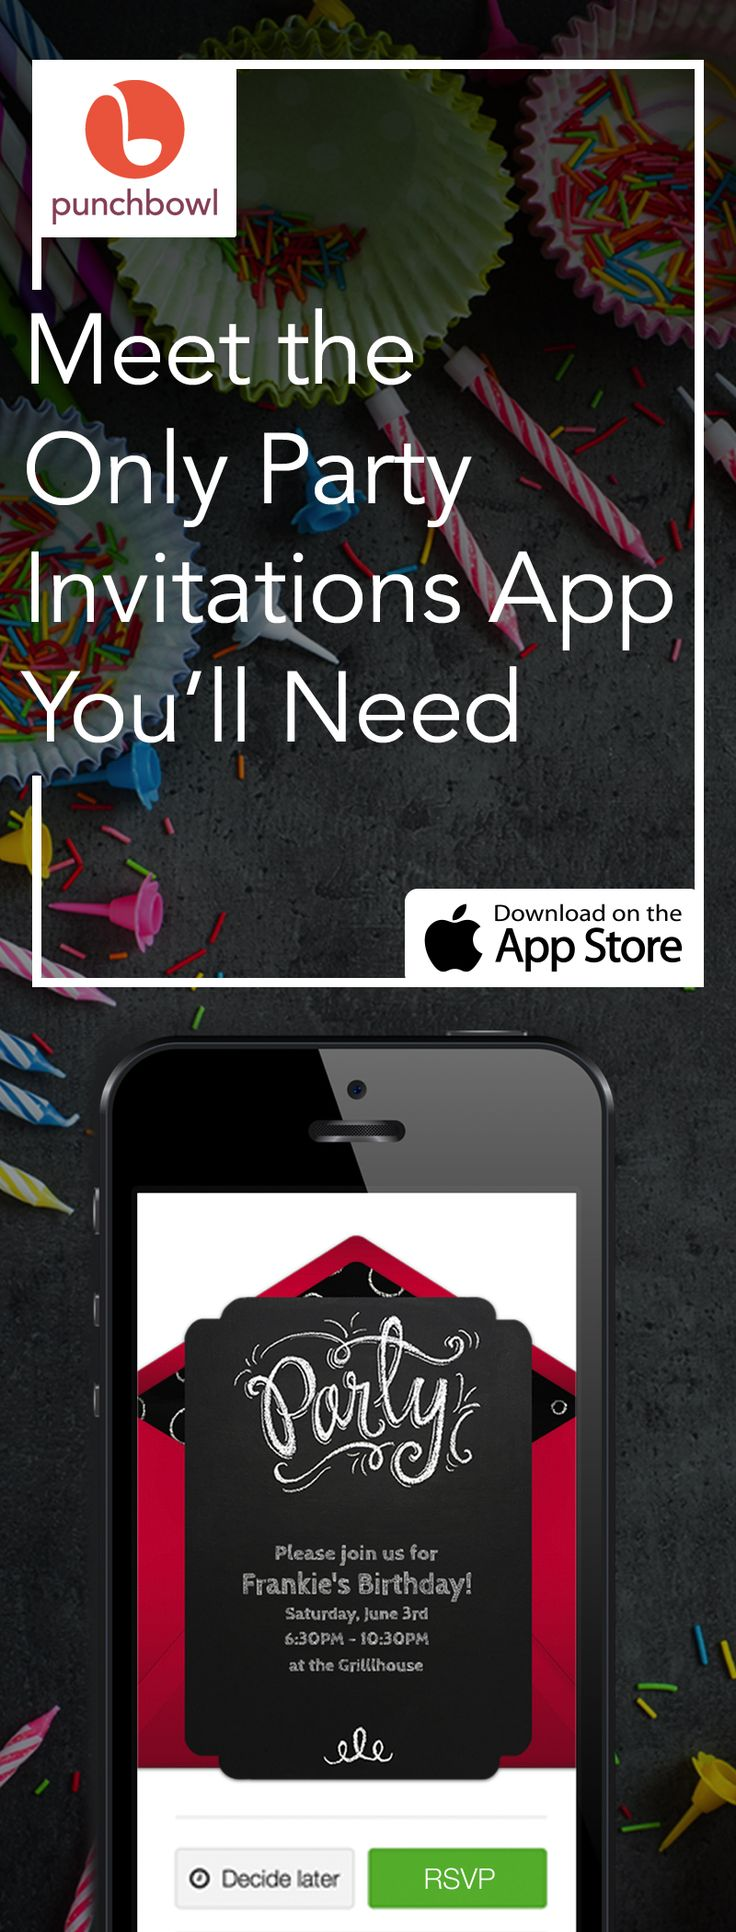 Paper invites are too formal, and emails are too casual. Get it just right with online invitations from Punchbowl. We've got everything you need for your party.       https://itunes.apple.com/us/app/punchbowl-online-invitations/id628215241?mt=8/?utm_source=Pinterest&utm_medium=100.1P